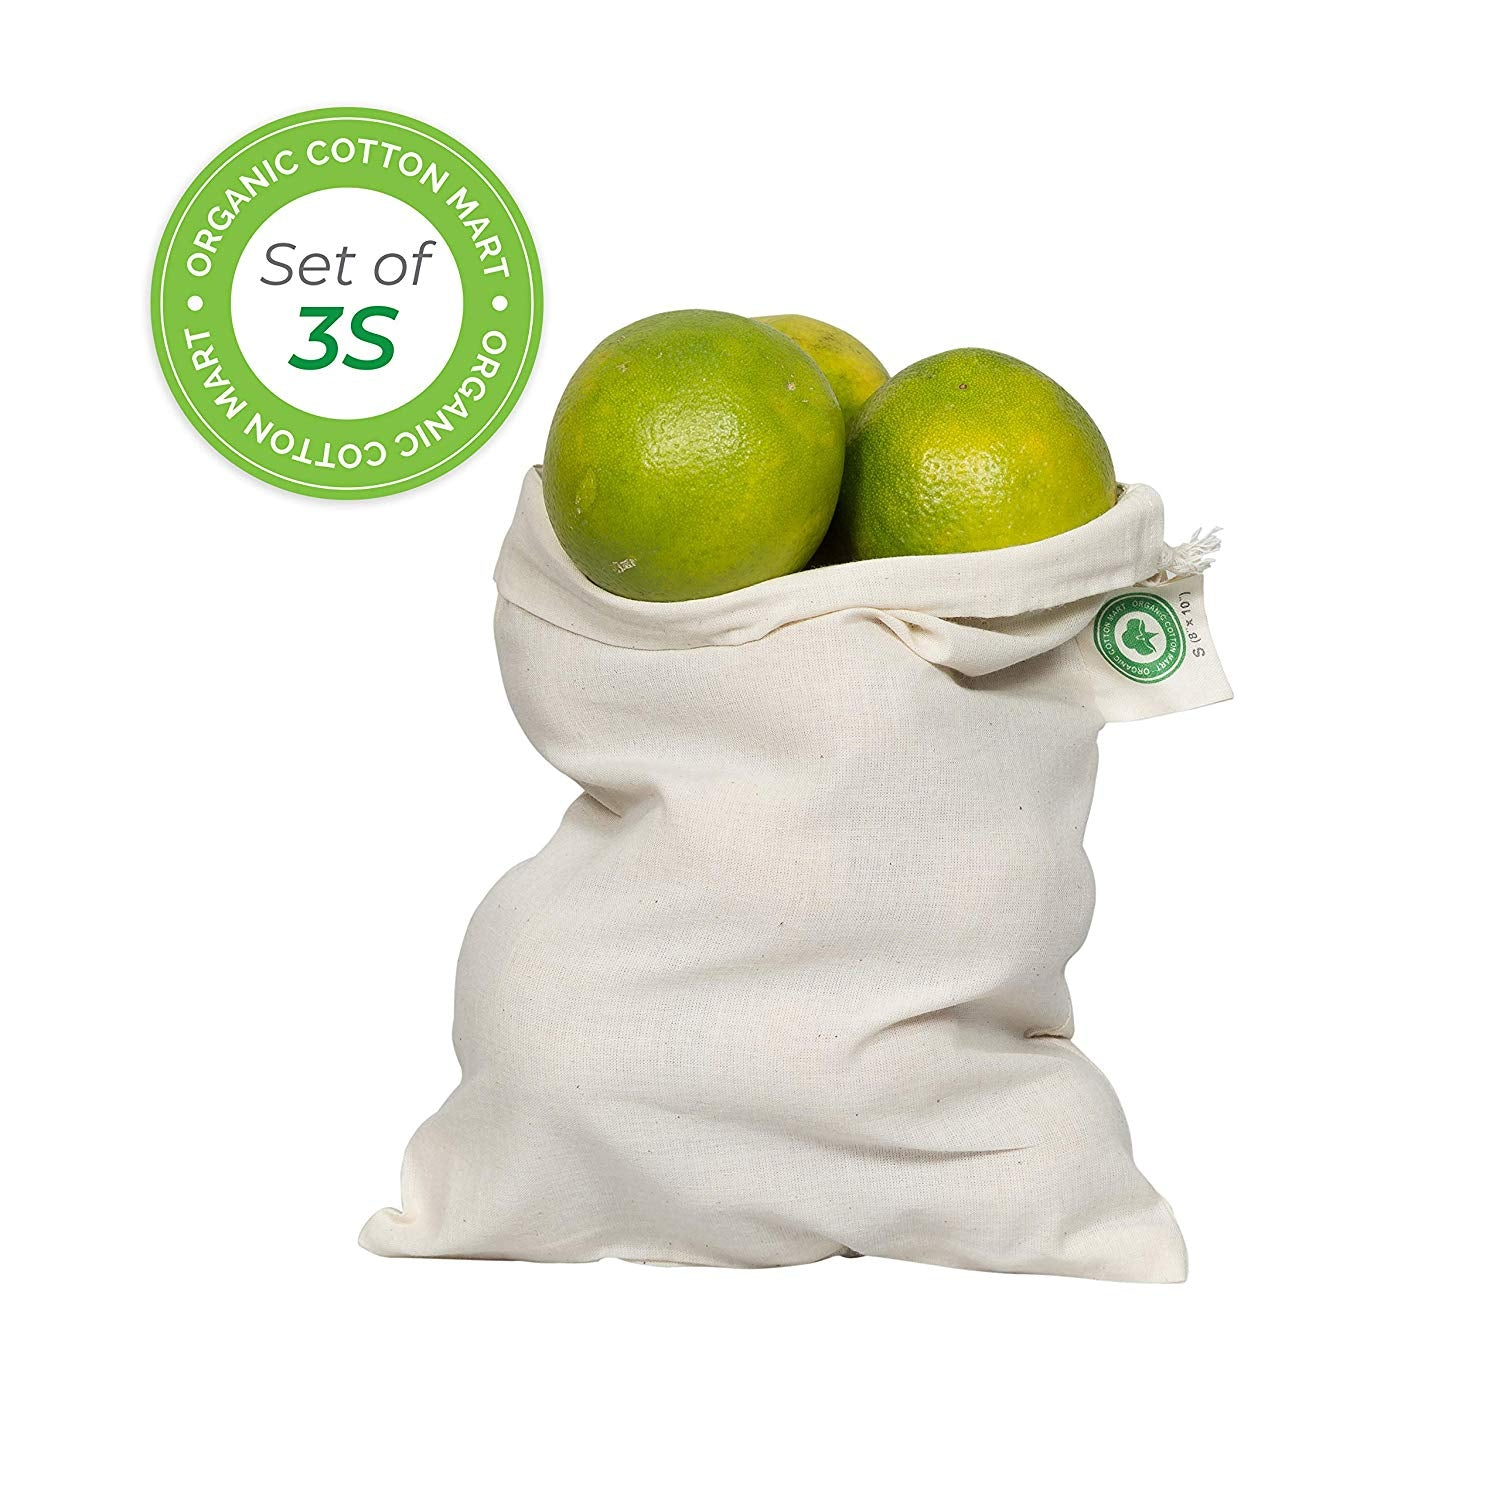 "Reusable grocery bags for produce - Reusable Produce Bags Small - Small muslin bags for Brewing - Organic Cotton with Drawstring - Small Organic Tea Bag - Set of 3 (3, Small - 8""x10"")"